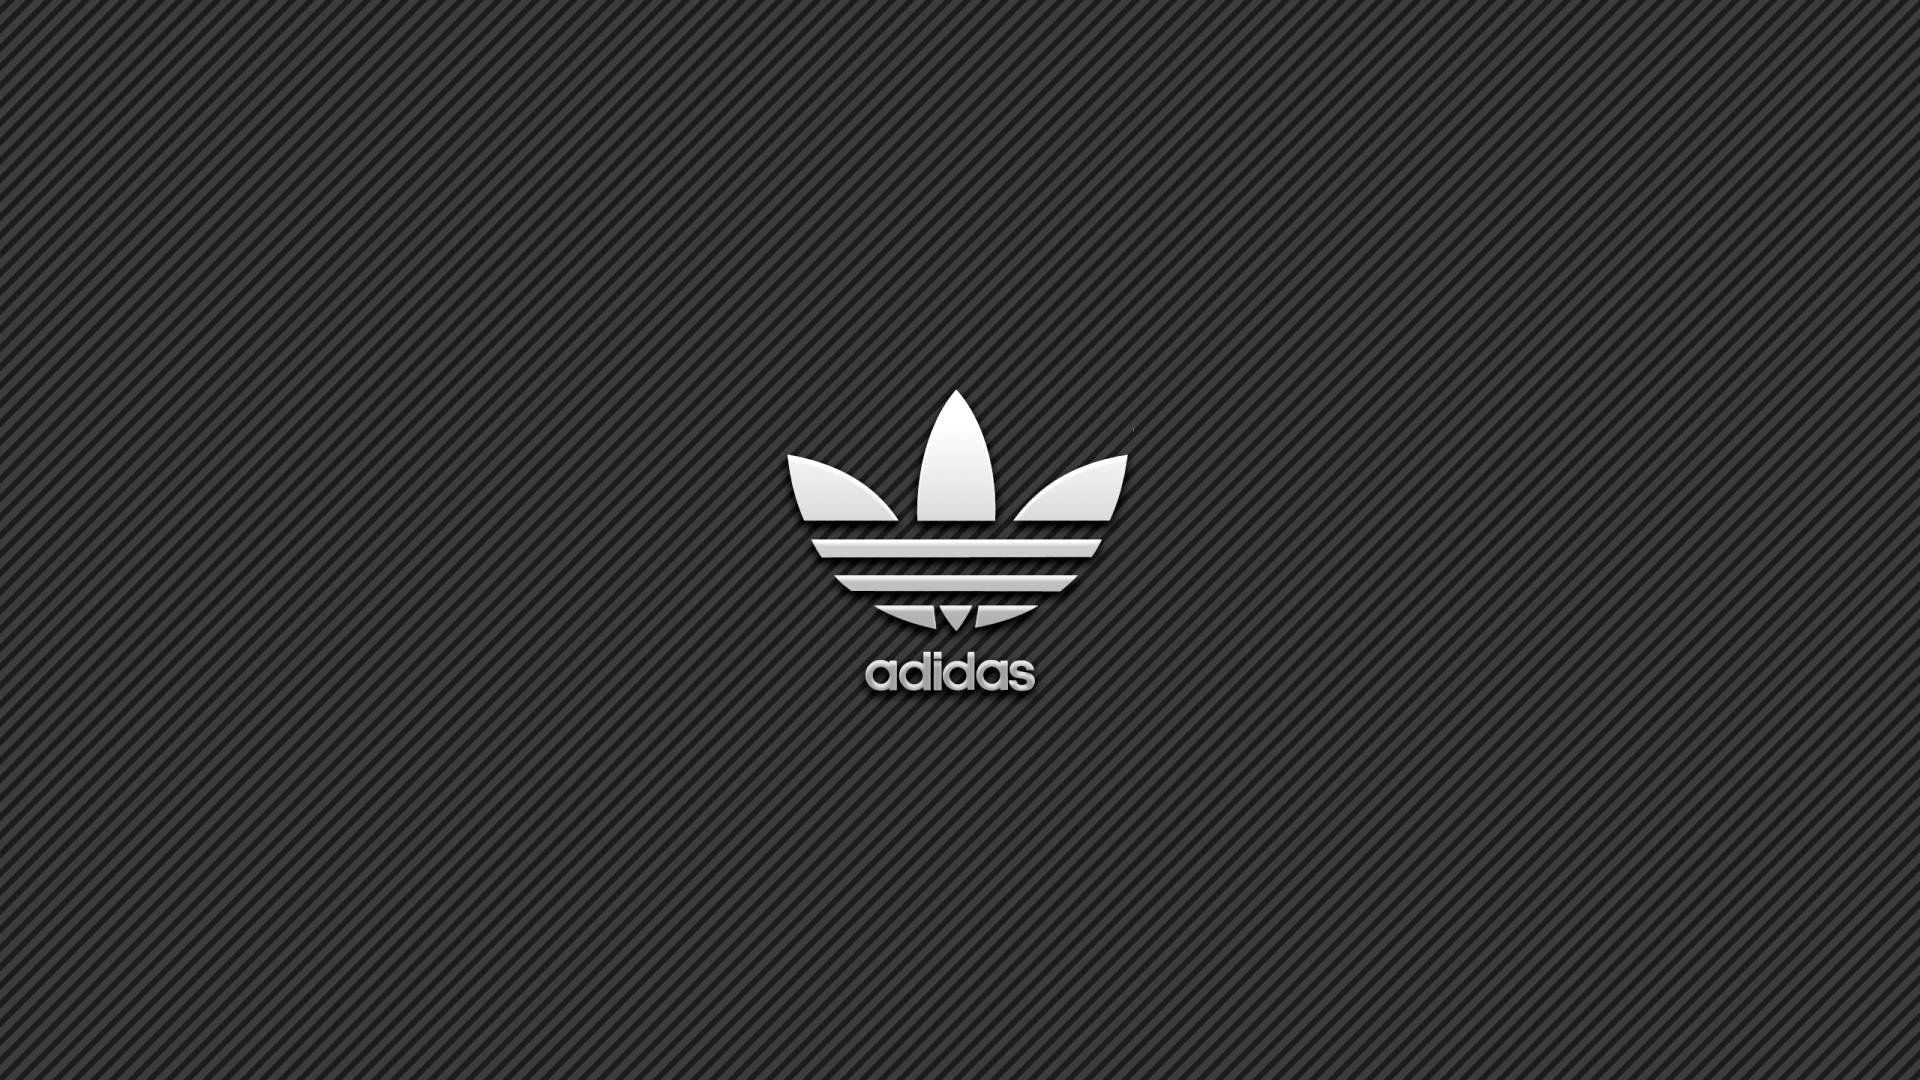 adidas full hd wallpaper and background image 1920x1080